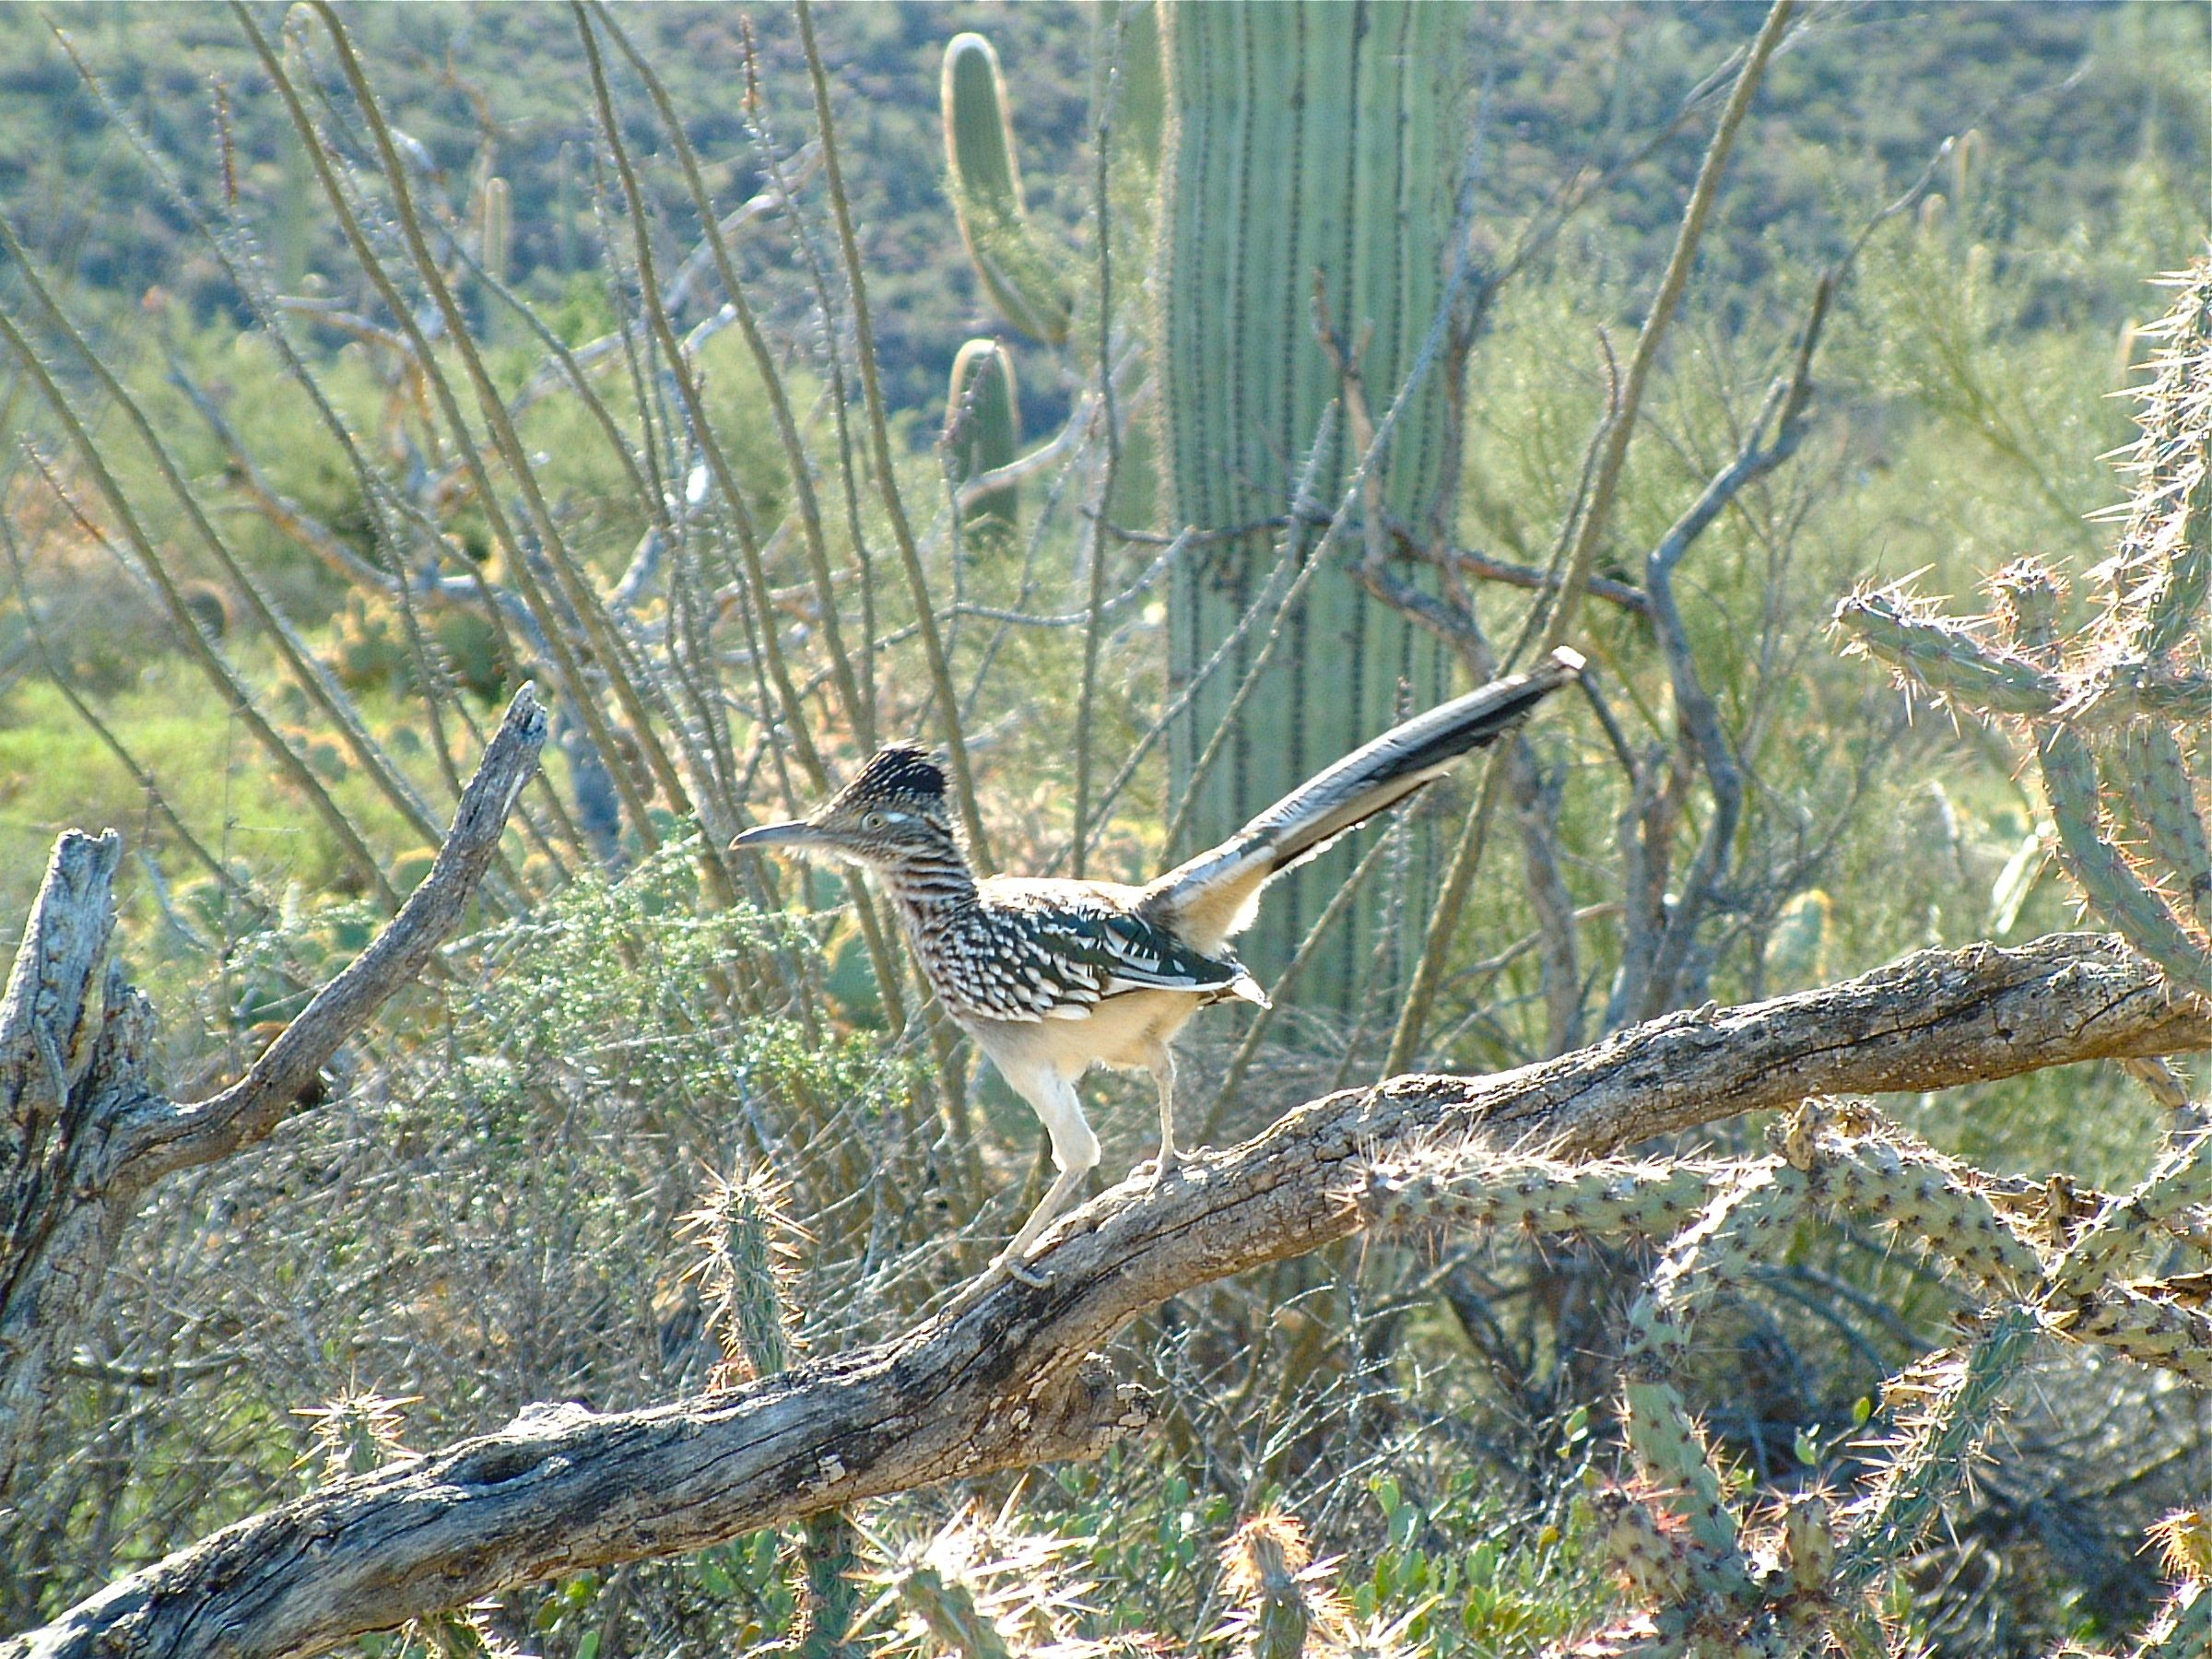 Roadrunner near Tucson by Thomas Ale Johnson